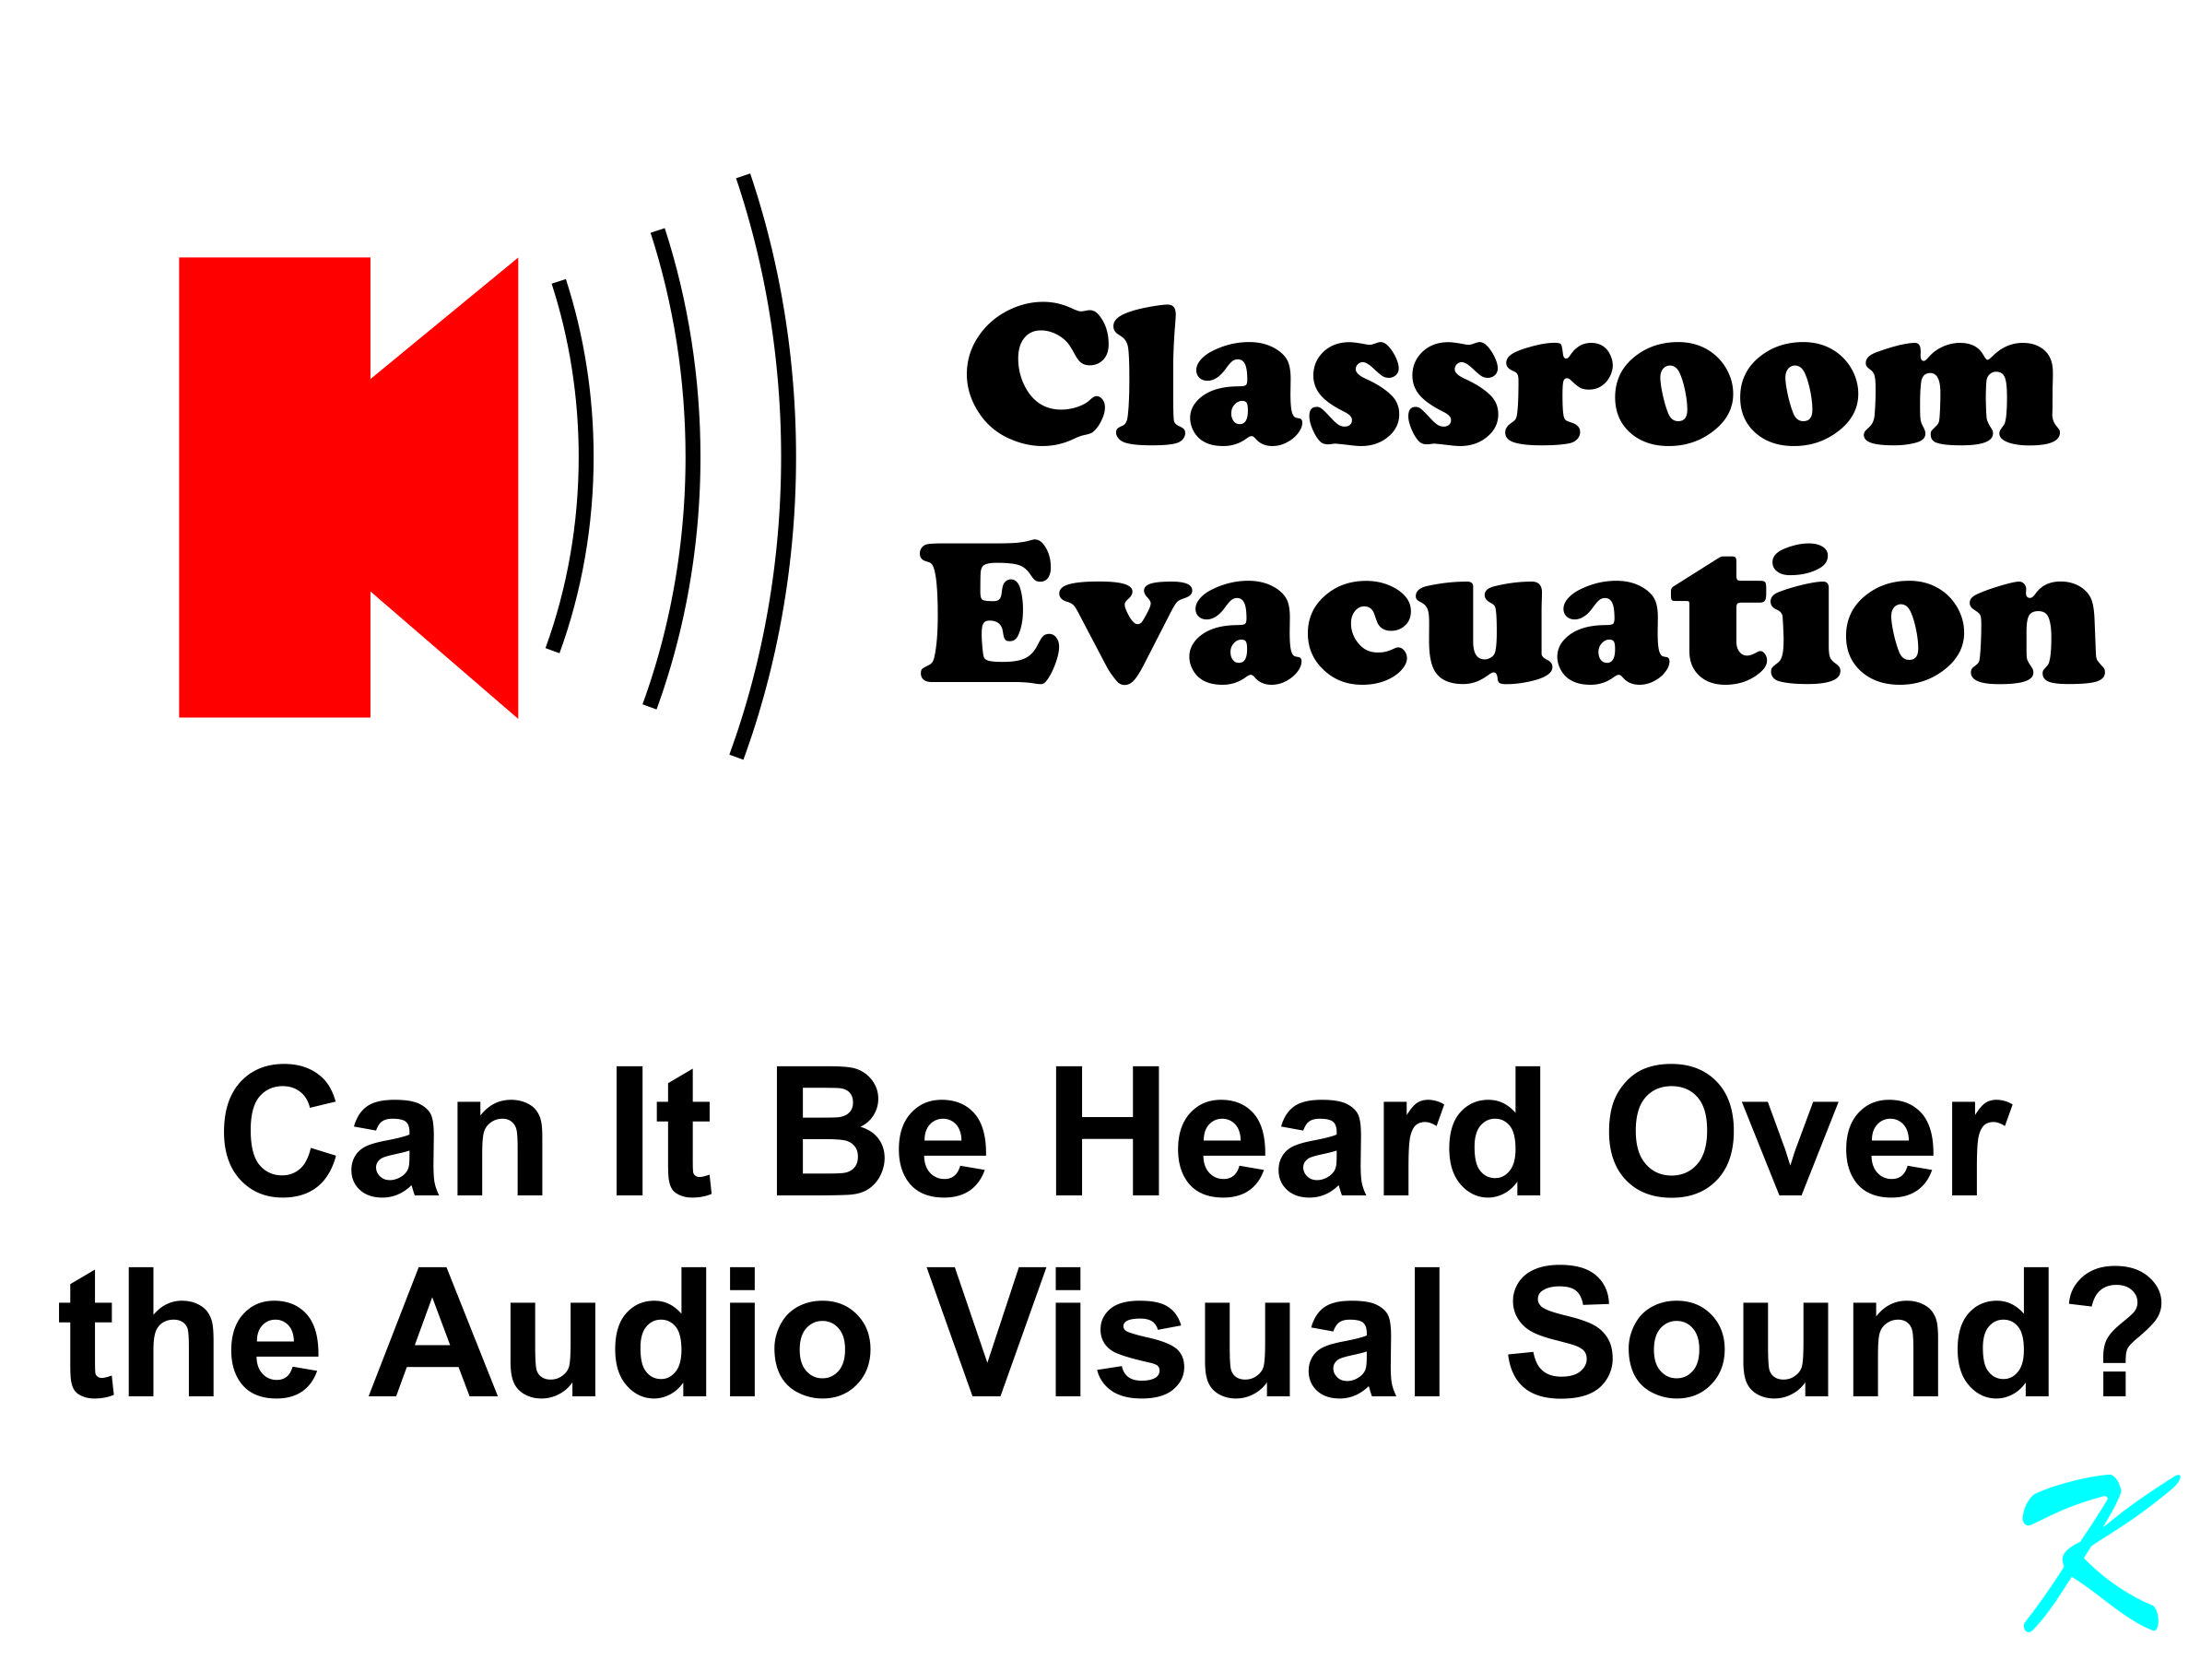 In a school, if the fire alarms are not as loud as the Audio / Visual system, the AV system should be shut down during a fire alarm. Whether or not the law says you have to, if the students can't hear the alarm, there's a problem.